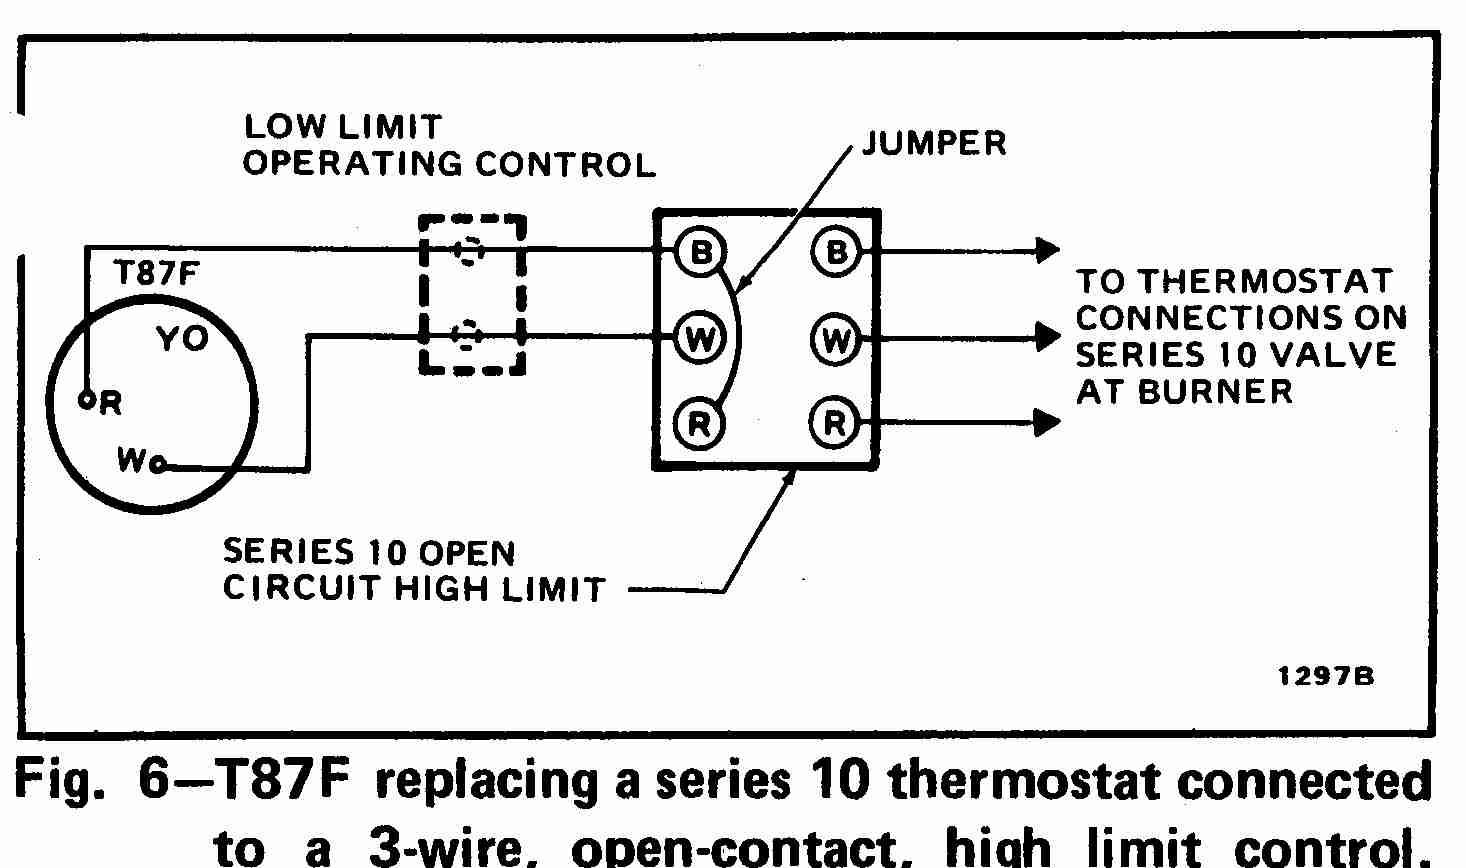 Wiring Diagram For Thermostat Honeywell : Room thermostat wiring diagrams for hvac systems